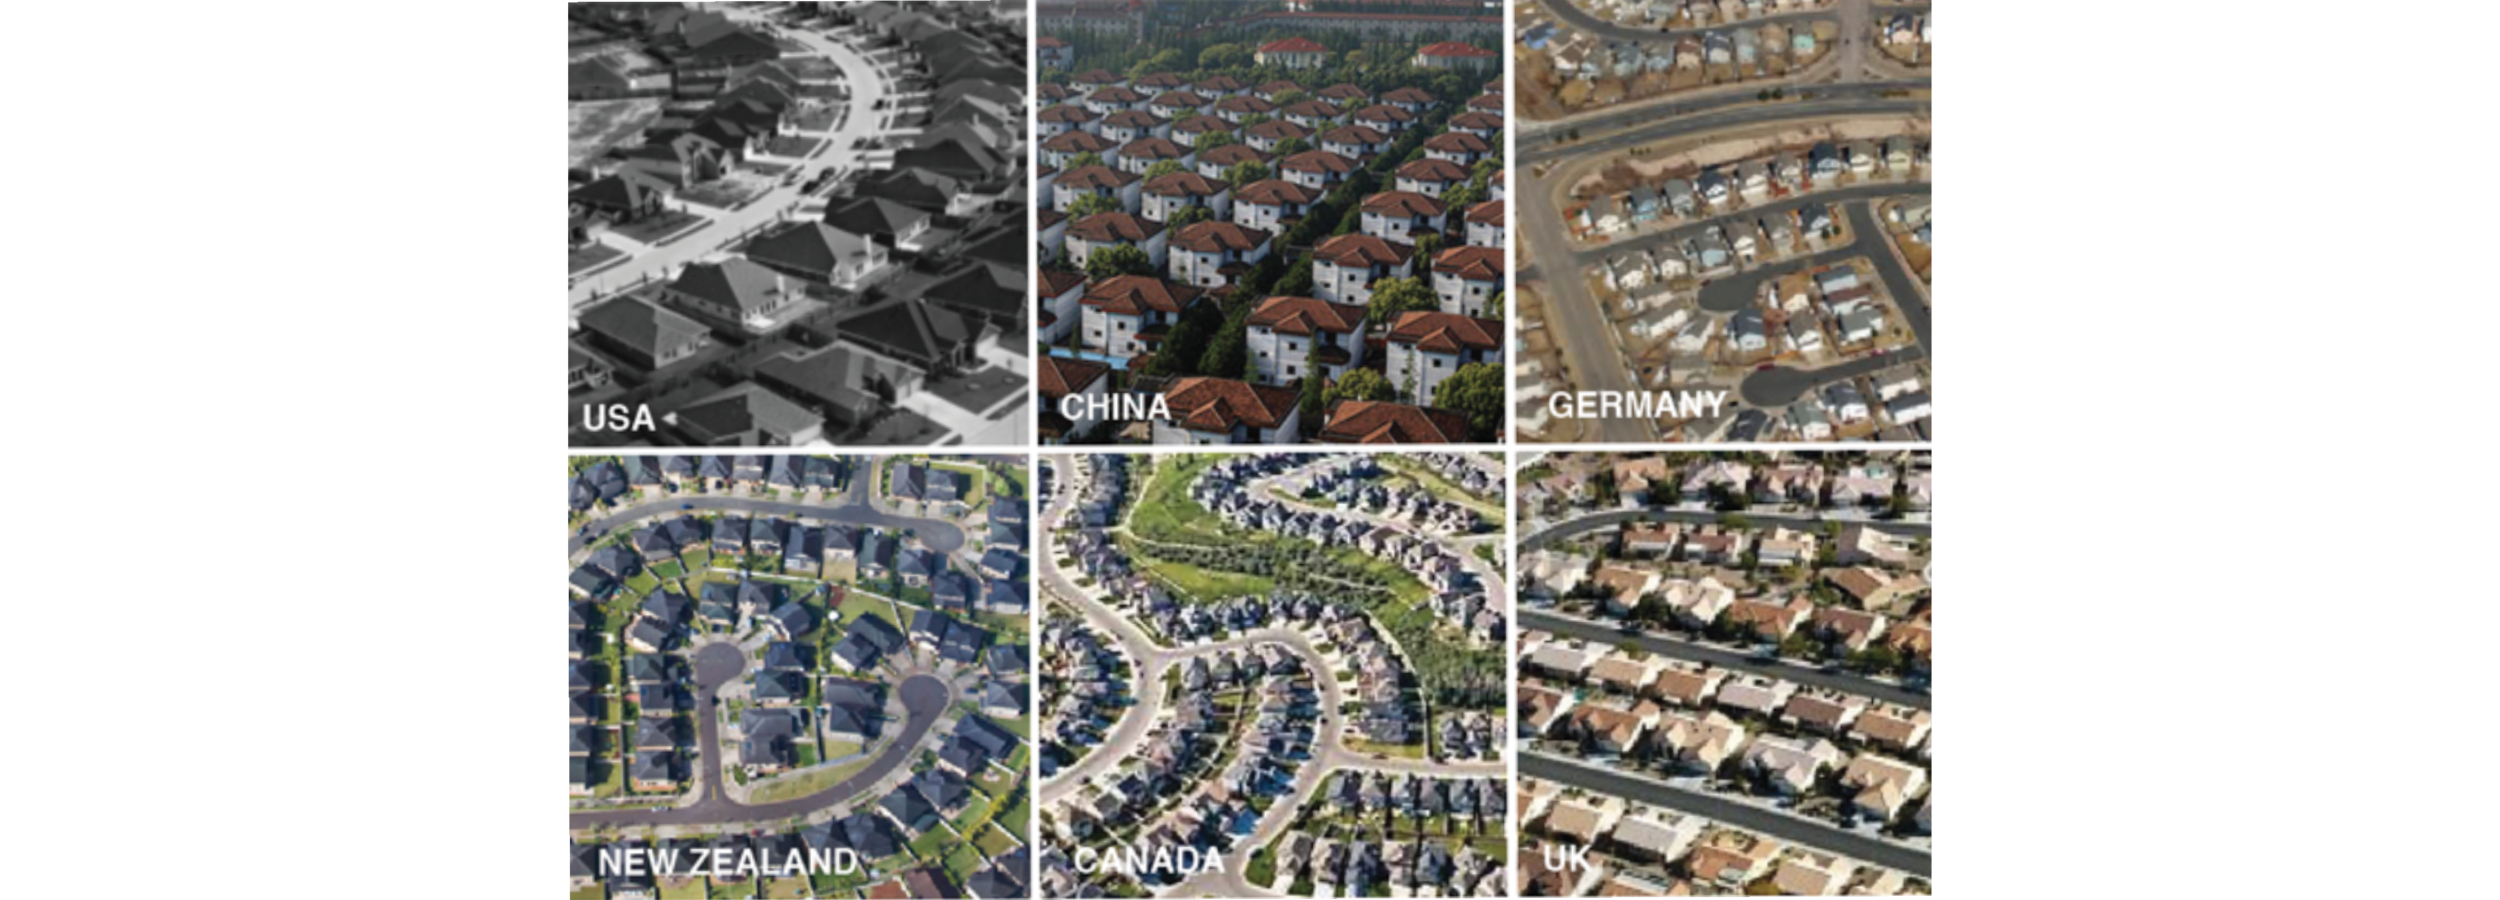 All over the world rapid urban development has resulted in neighbourhoods that look physically similar, but the social life remains varied.